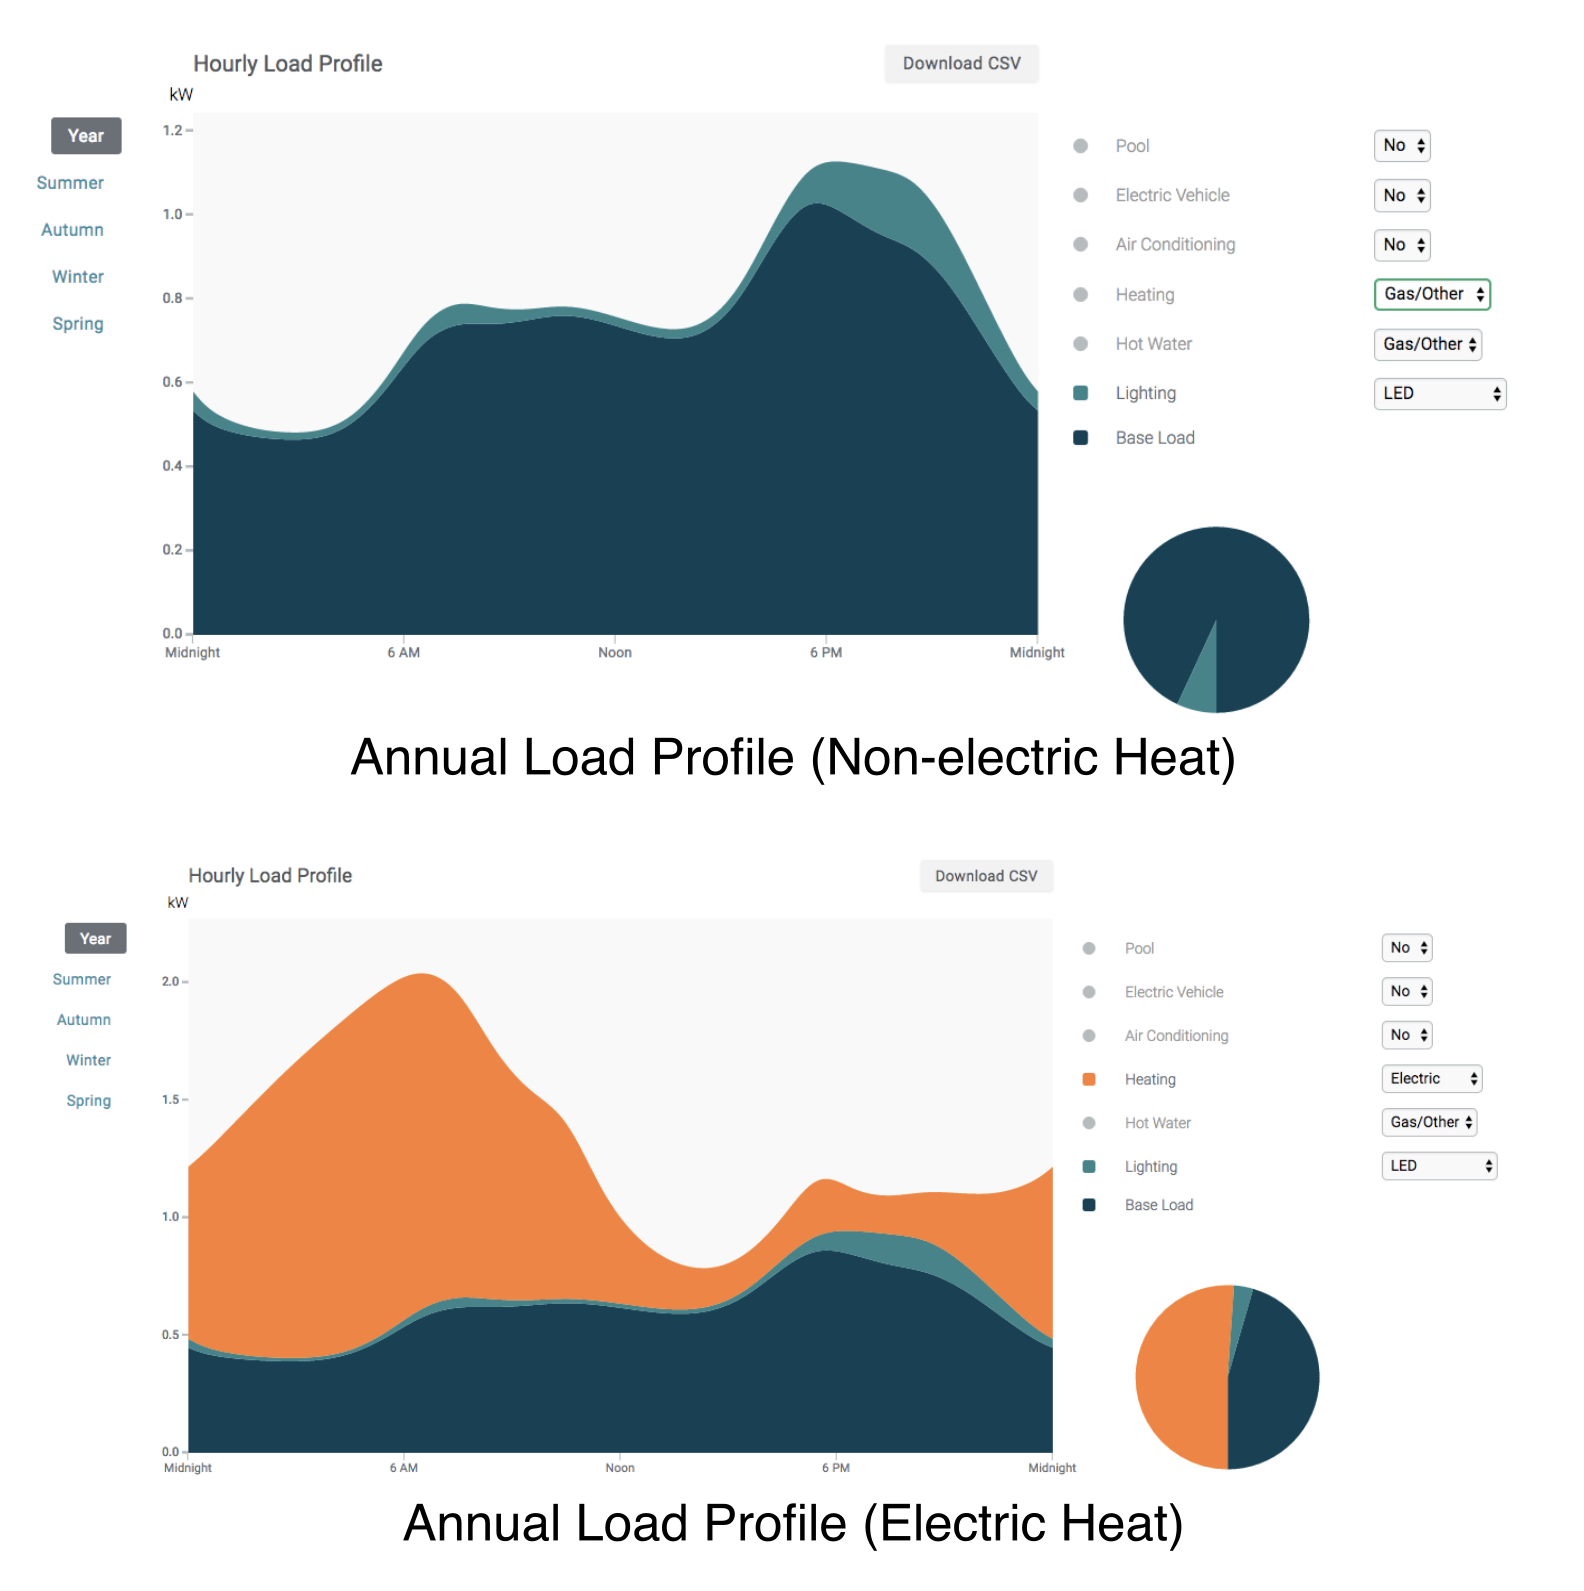 estimated annual load profiles for the same house, with and without electric heat